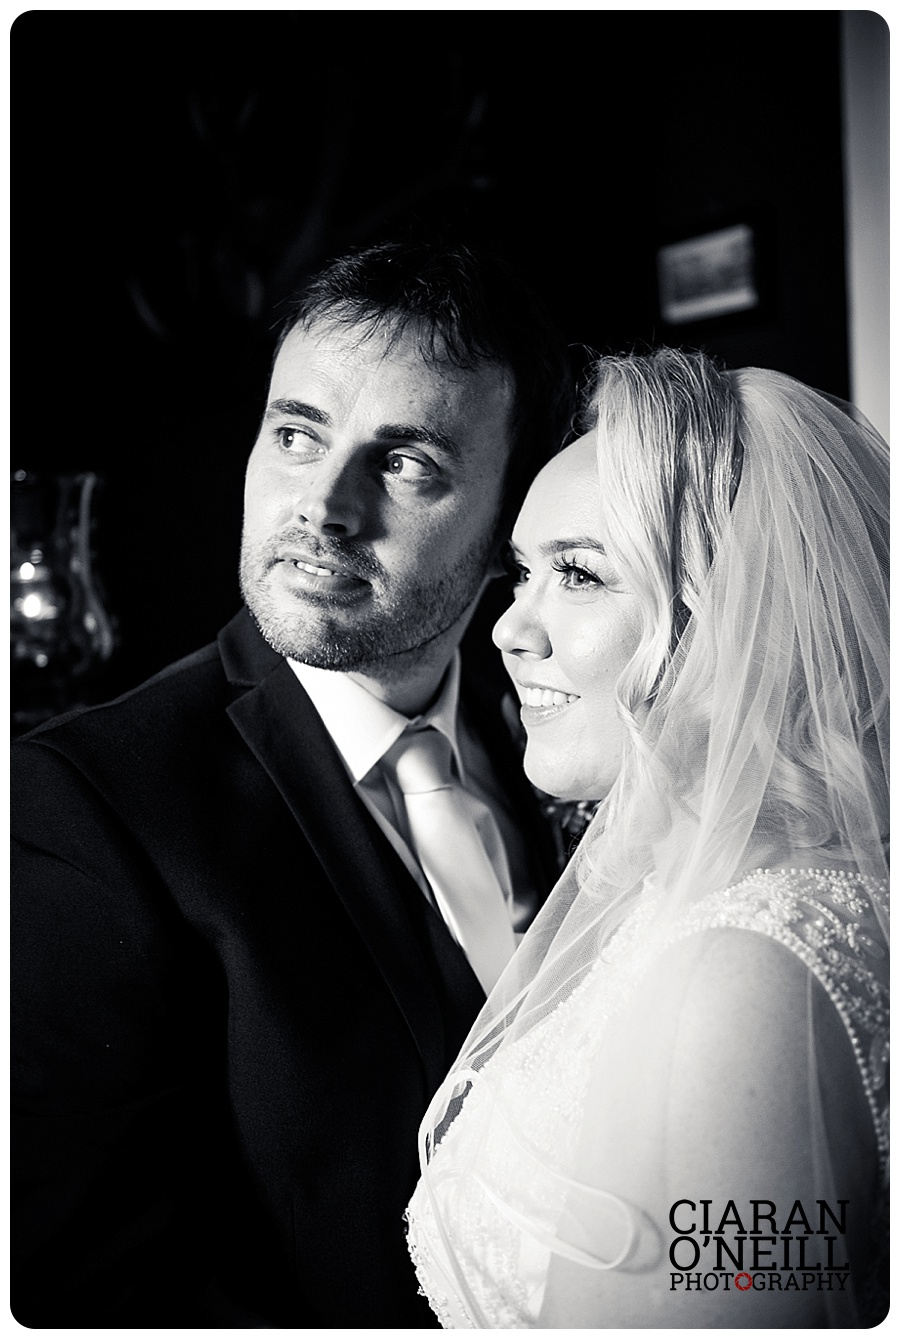 Tracy & Owen's wedding at Castle Bellingham by Ciaran O'Neill Photography